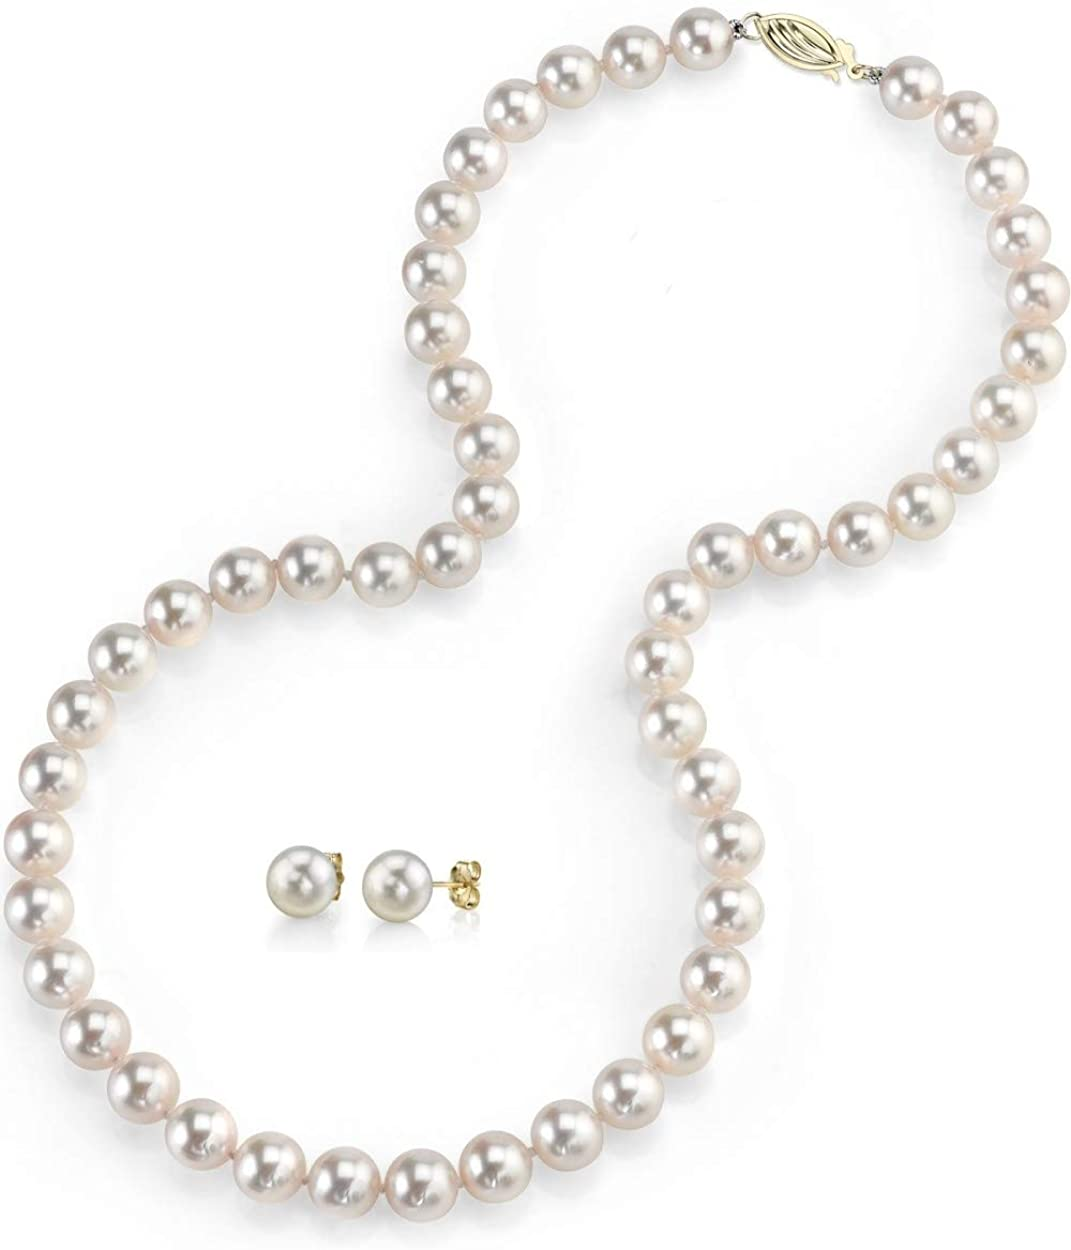 Freshwater Cultured Pearl Necklace Set for Women Includes Stud Earrings with 14K Gold in AAAA Quality - THE PEARL SOURCE